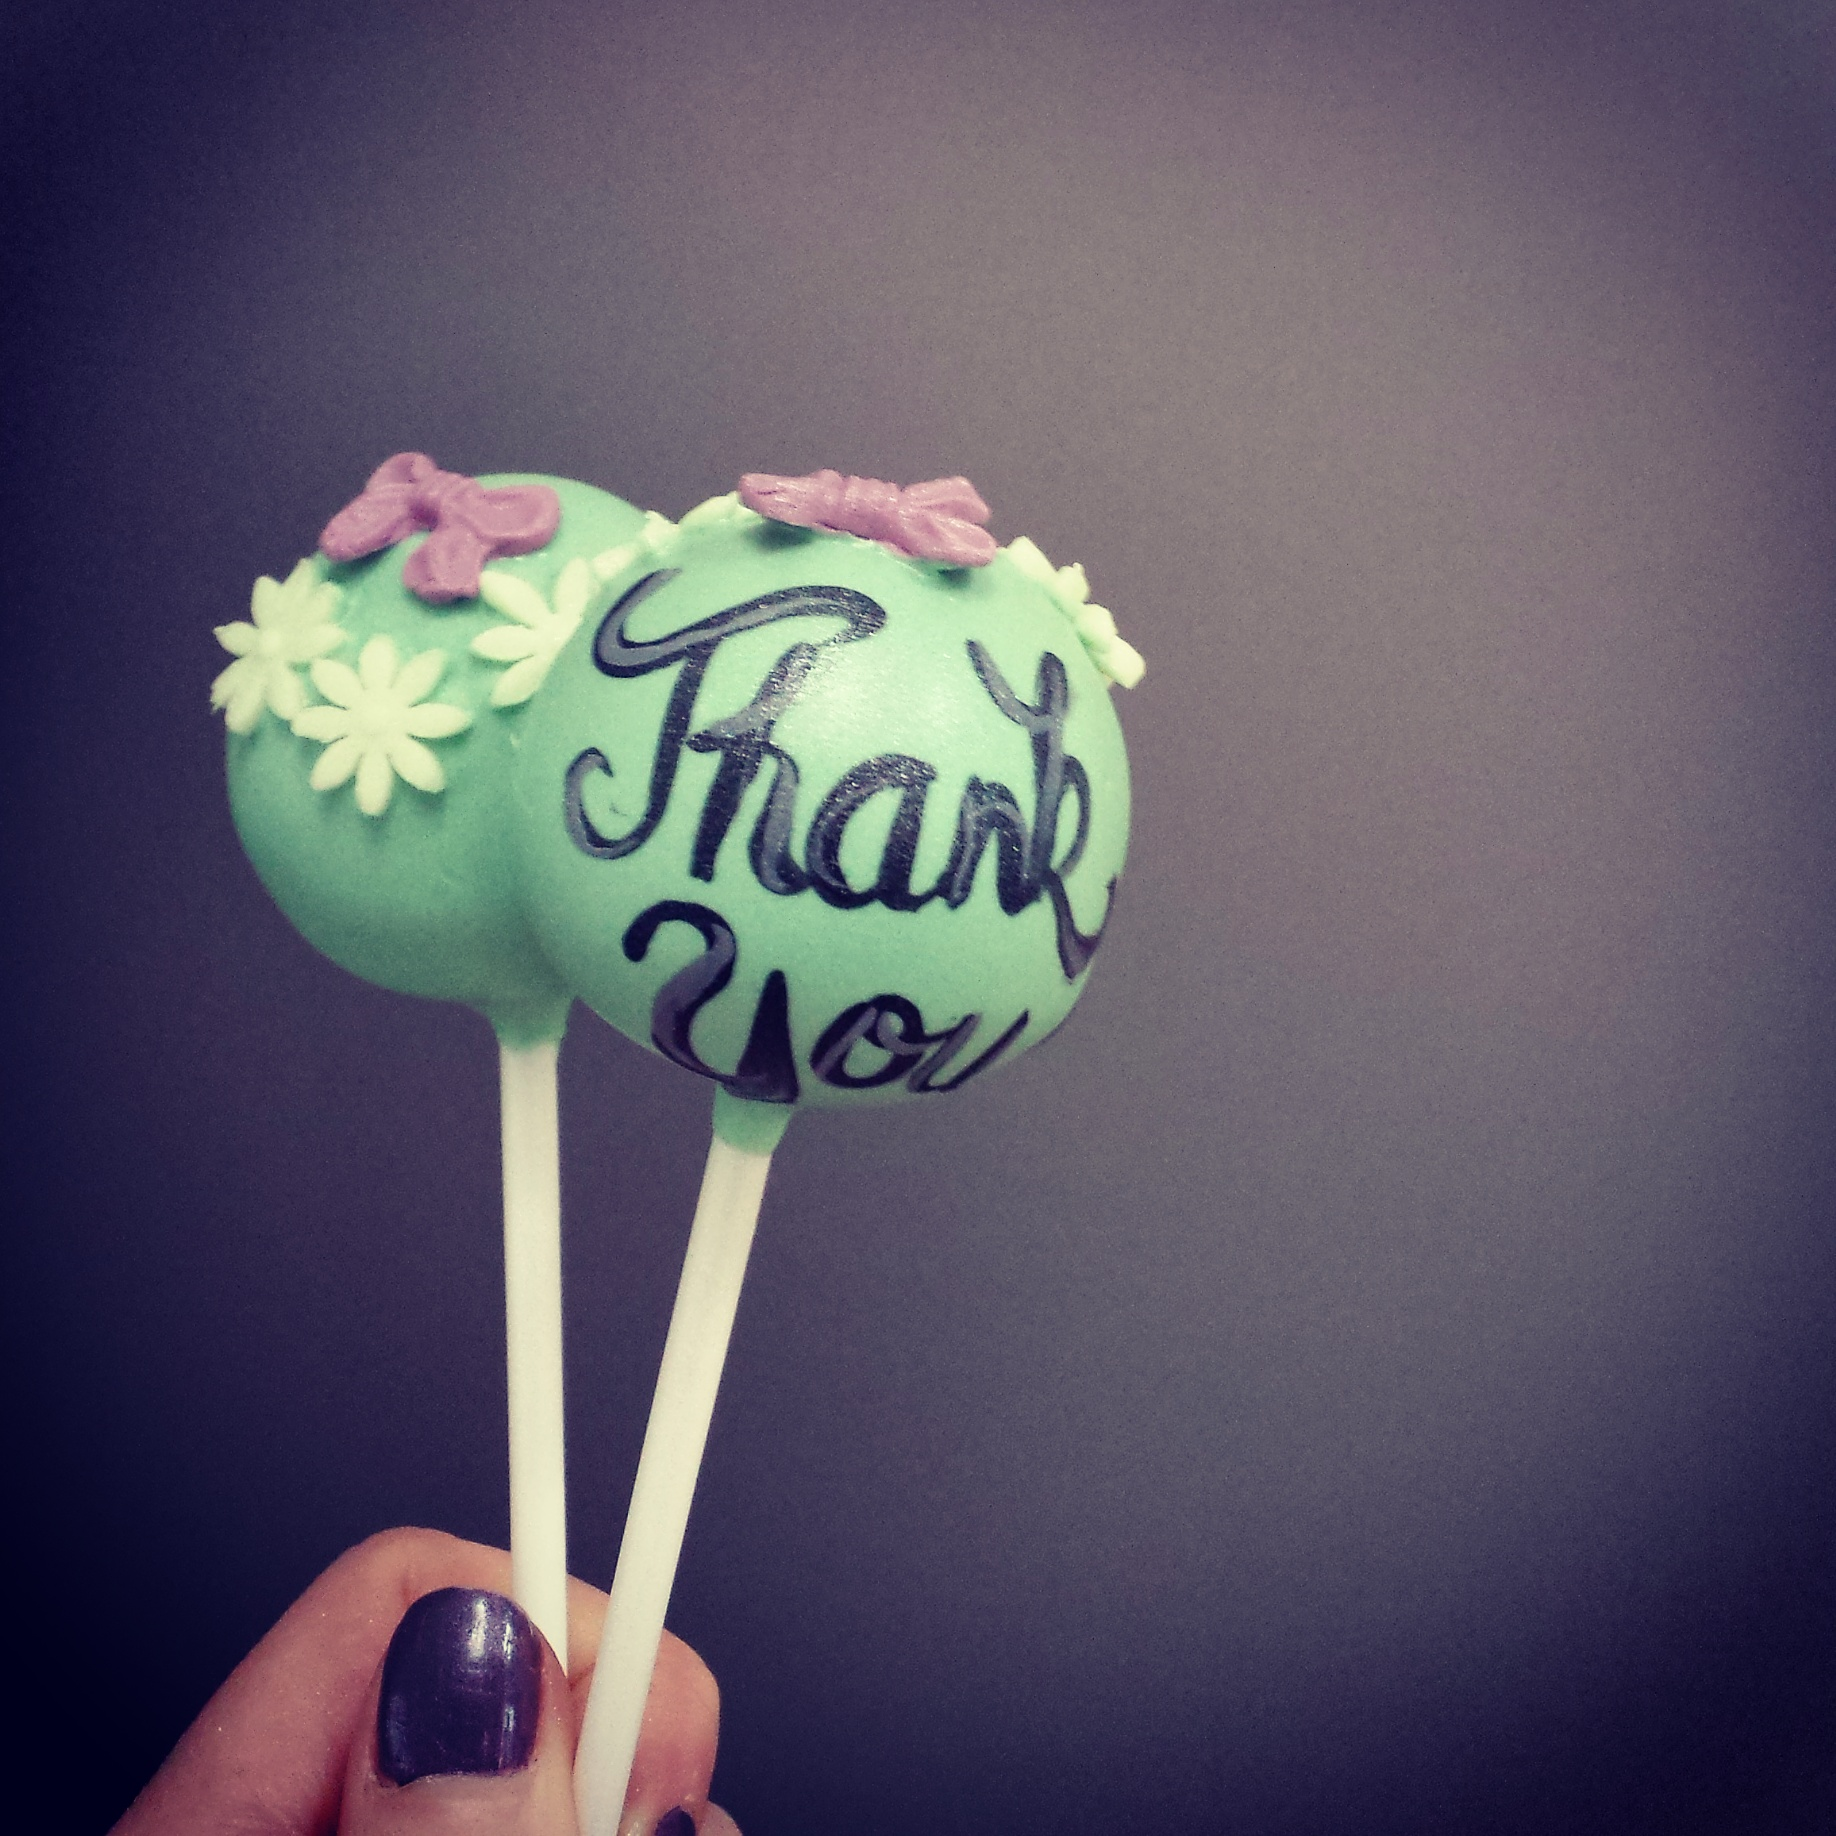 Flower 'Thank You' cake pops